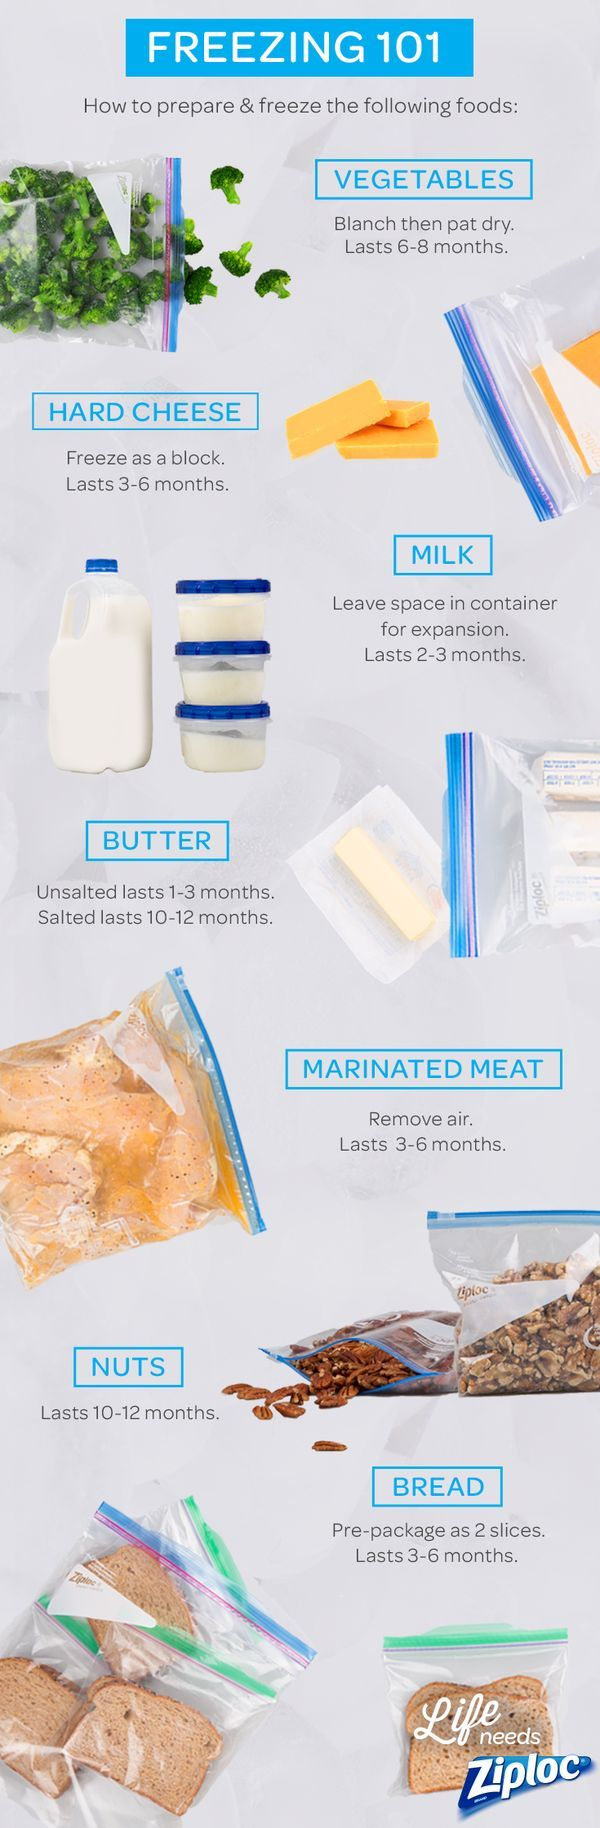 Take the mystery out of freezing food with this handy guide, which shows how long you can freeze vegetables, tomatoes, cheese, milk, butter, meat, chicken, nuts, and bread using Ziploc® bags and containers. These instructions will help protect your food and make frozen meal prep a lot easier.